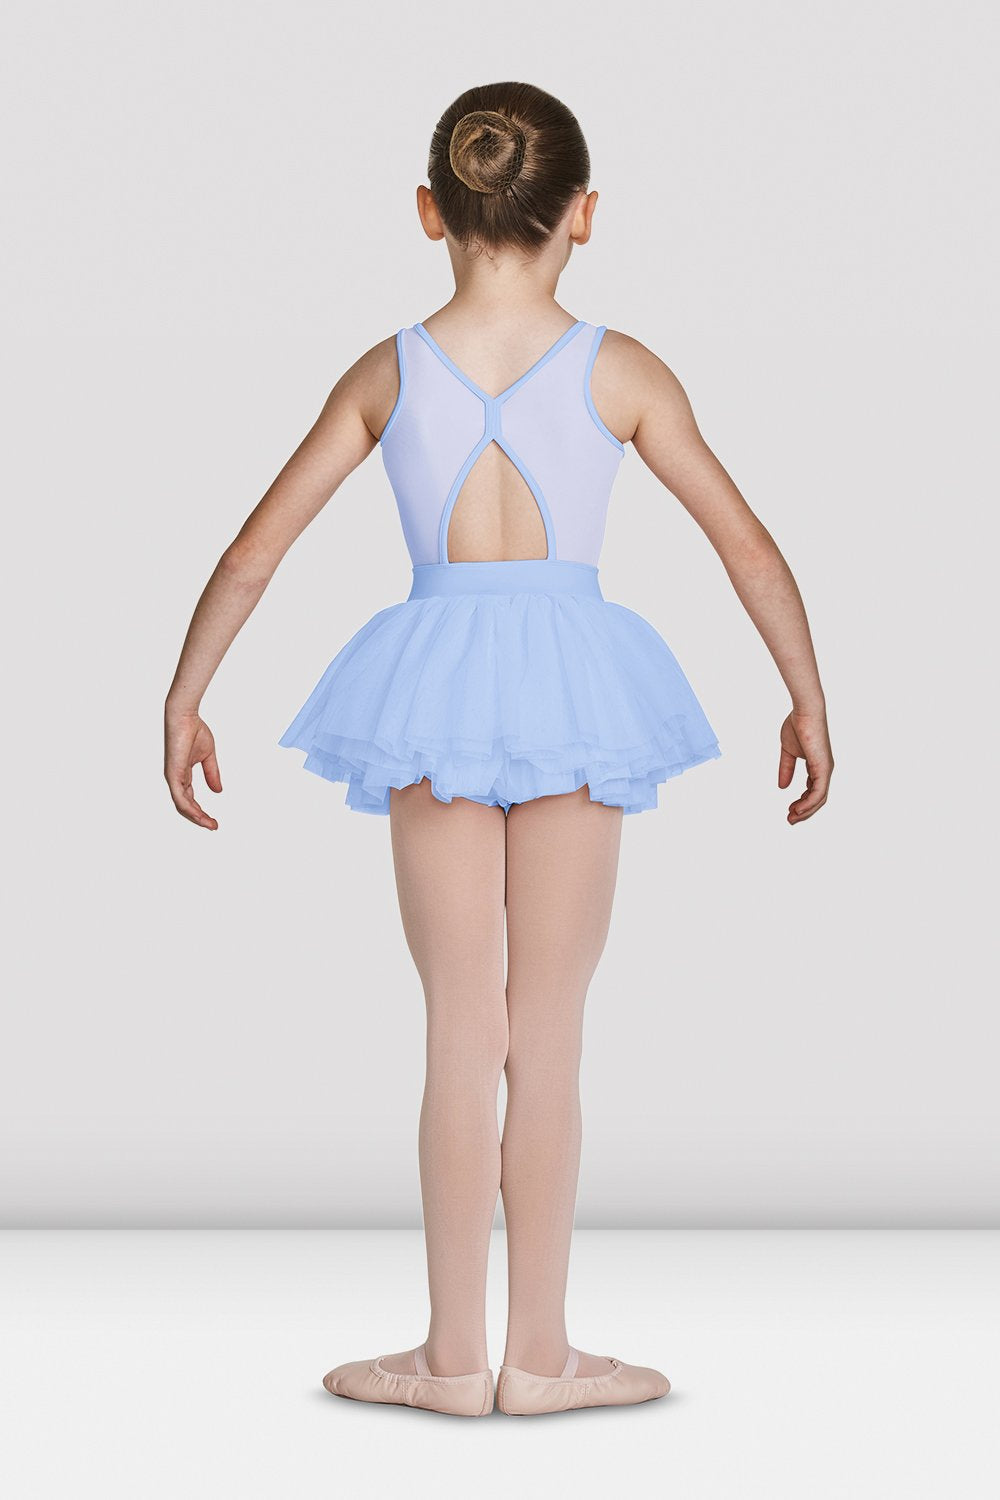 Blue Bloch Girls Mesh Bodice Tank Tutu Leotard on female model feet in first position with arms in demi bras facing back